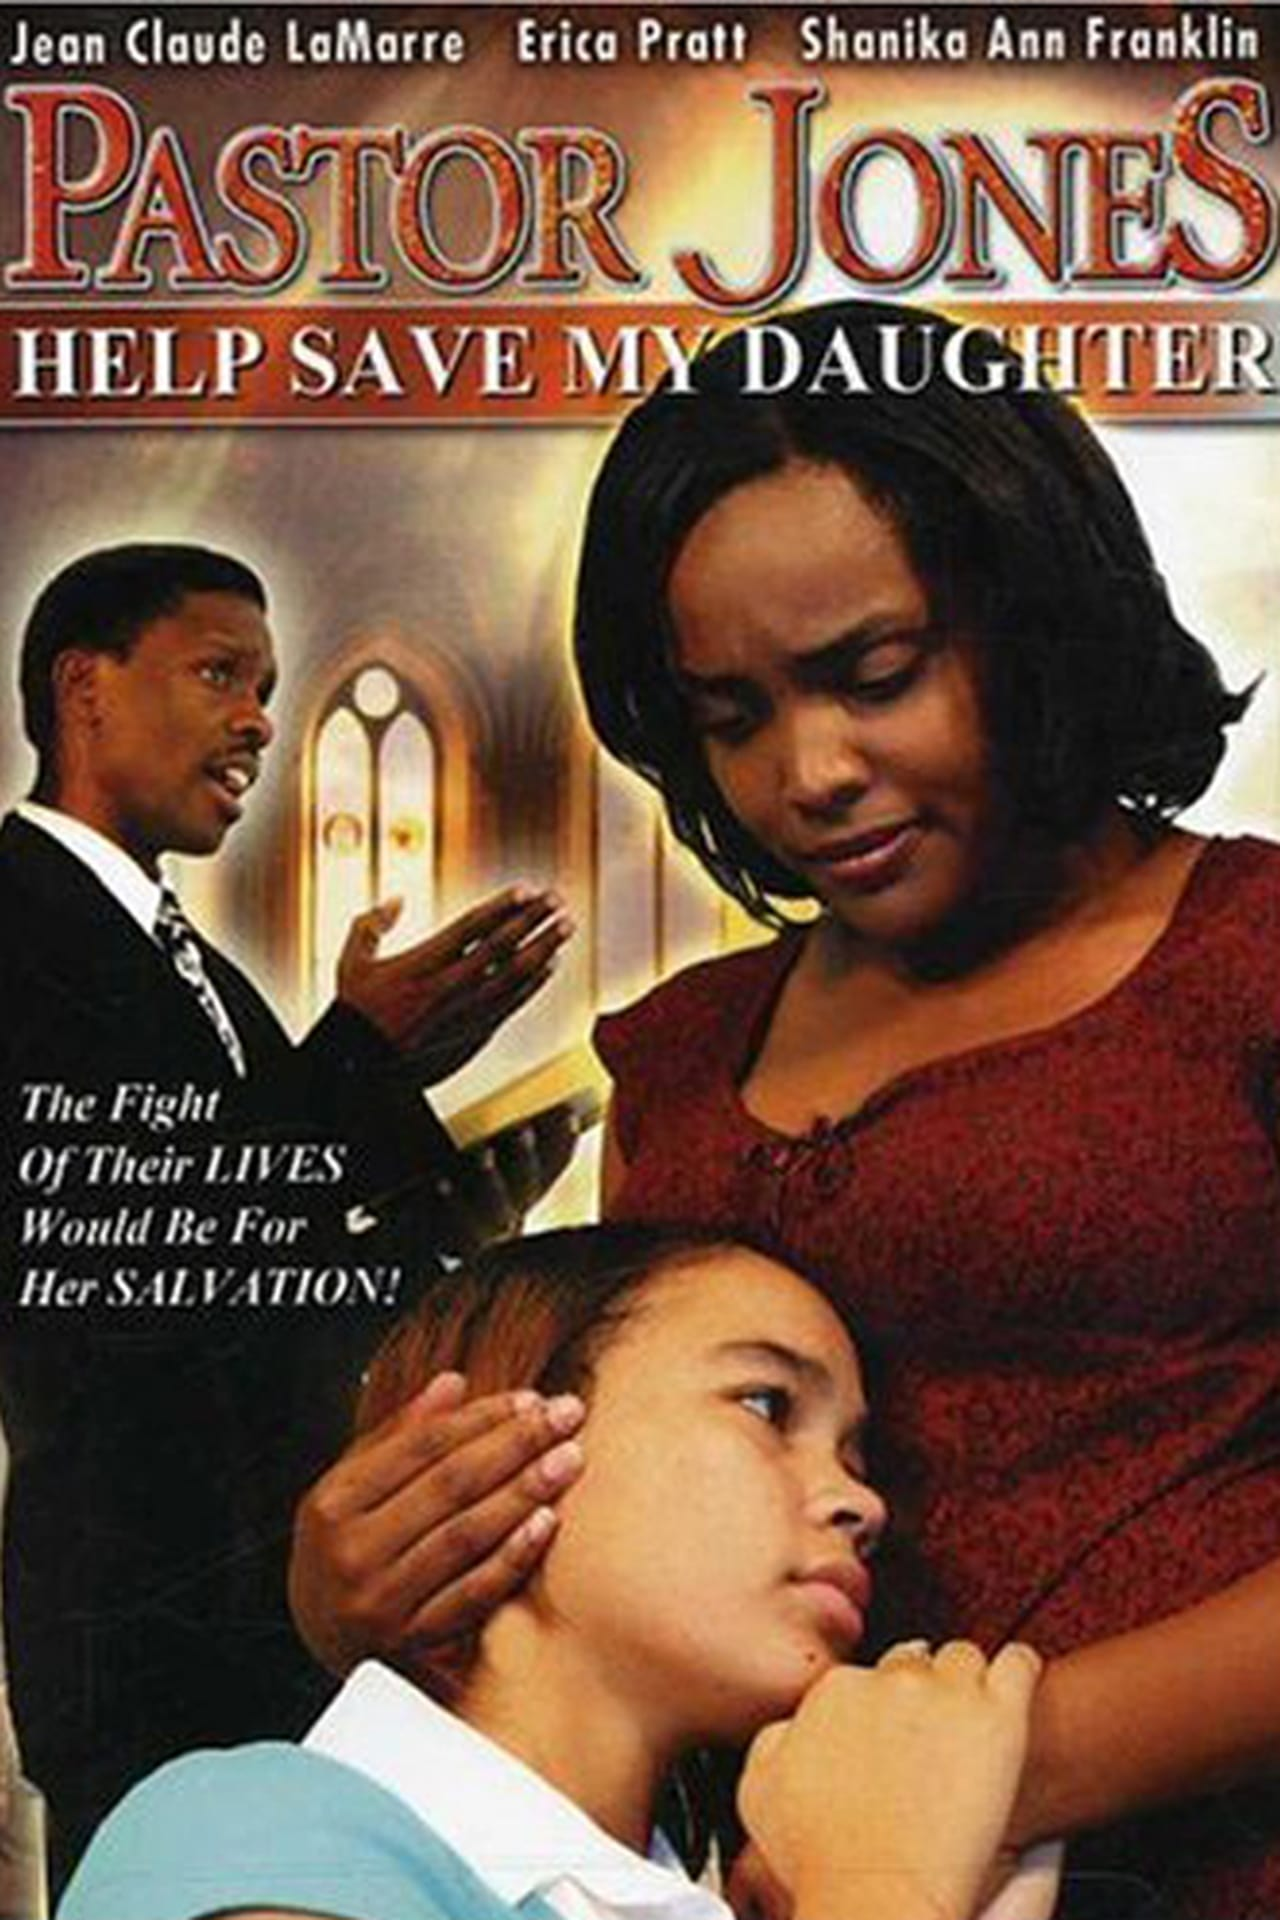 Pastor Jones 2: Lord Guide My 16 Year Old Daughter